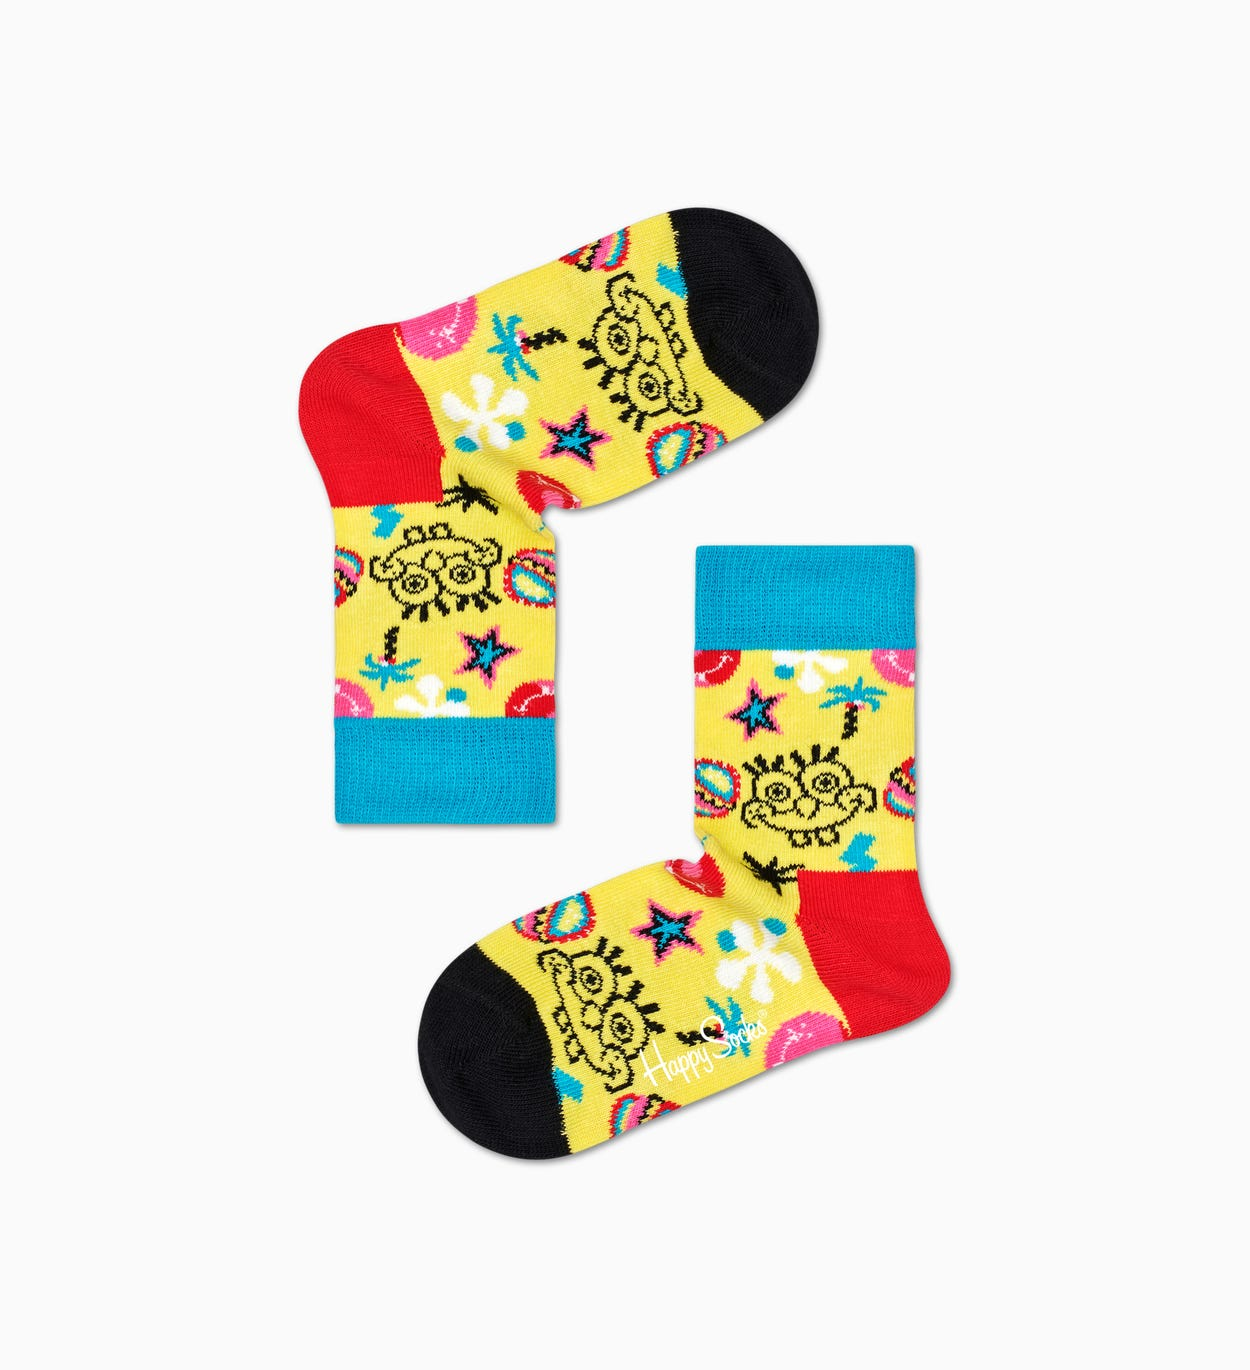 Happy Socks x Sponge Bob: Smile Storm Socken für Kinder